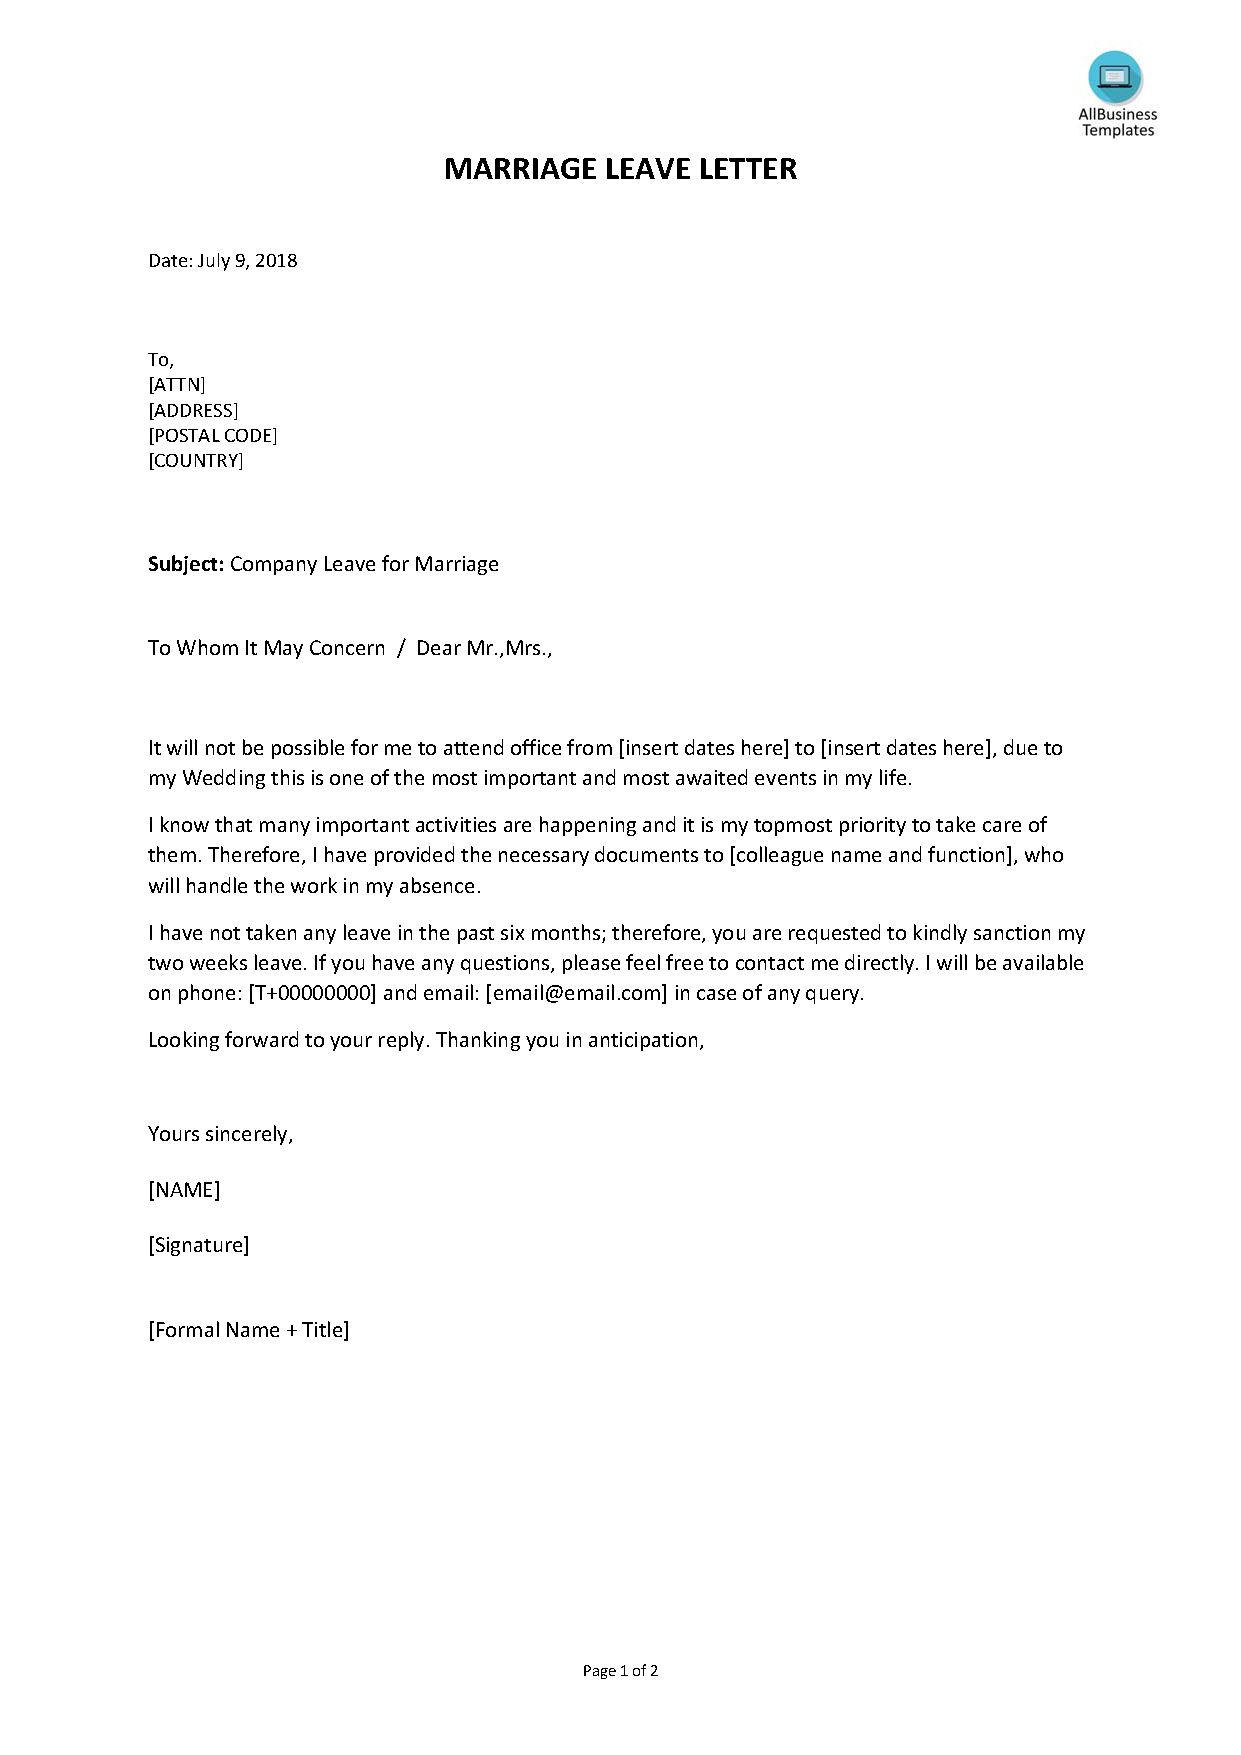 Free Paid Marriage Leave Letter Templates At Allbusinesstemplates Com